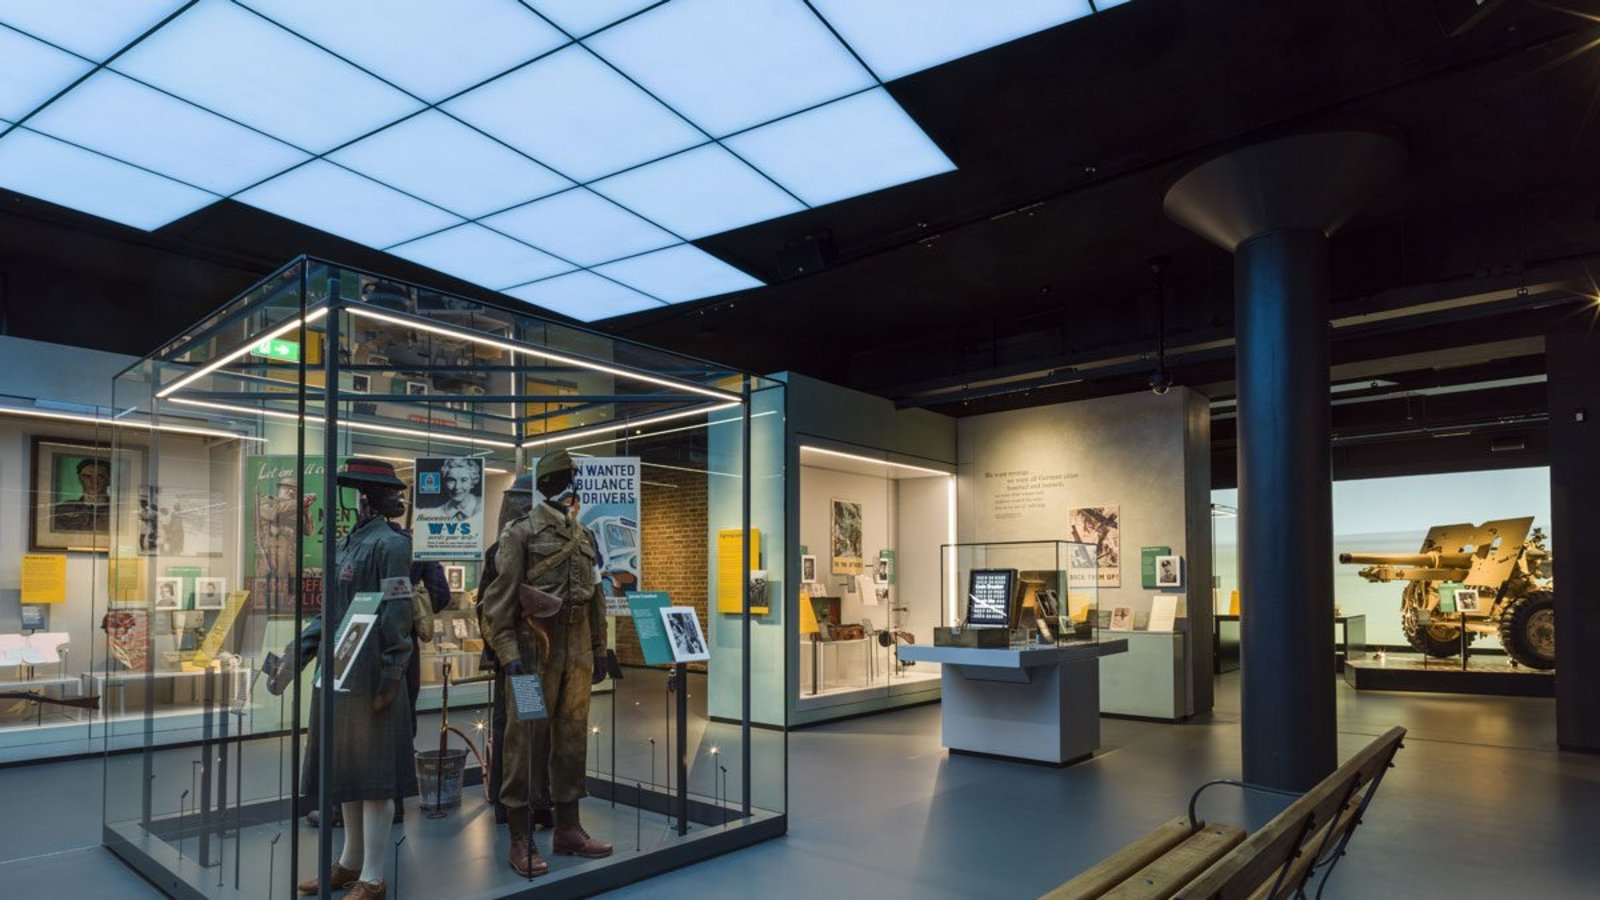 Overhead footage of the Battle of Britain and the Blitz, interspersed with calm skies, help set the scene in a gallery on what the war meant for Britain, part of the IWM Second World War Galleries, designed by Ralph Appelbaum Associates.